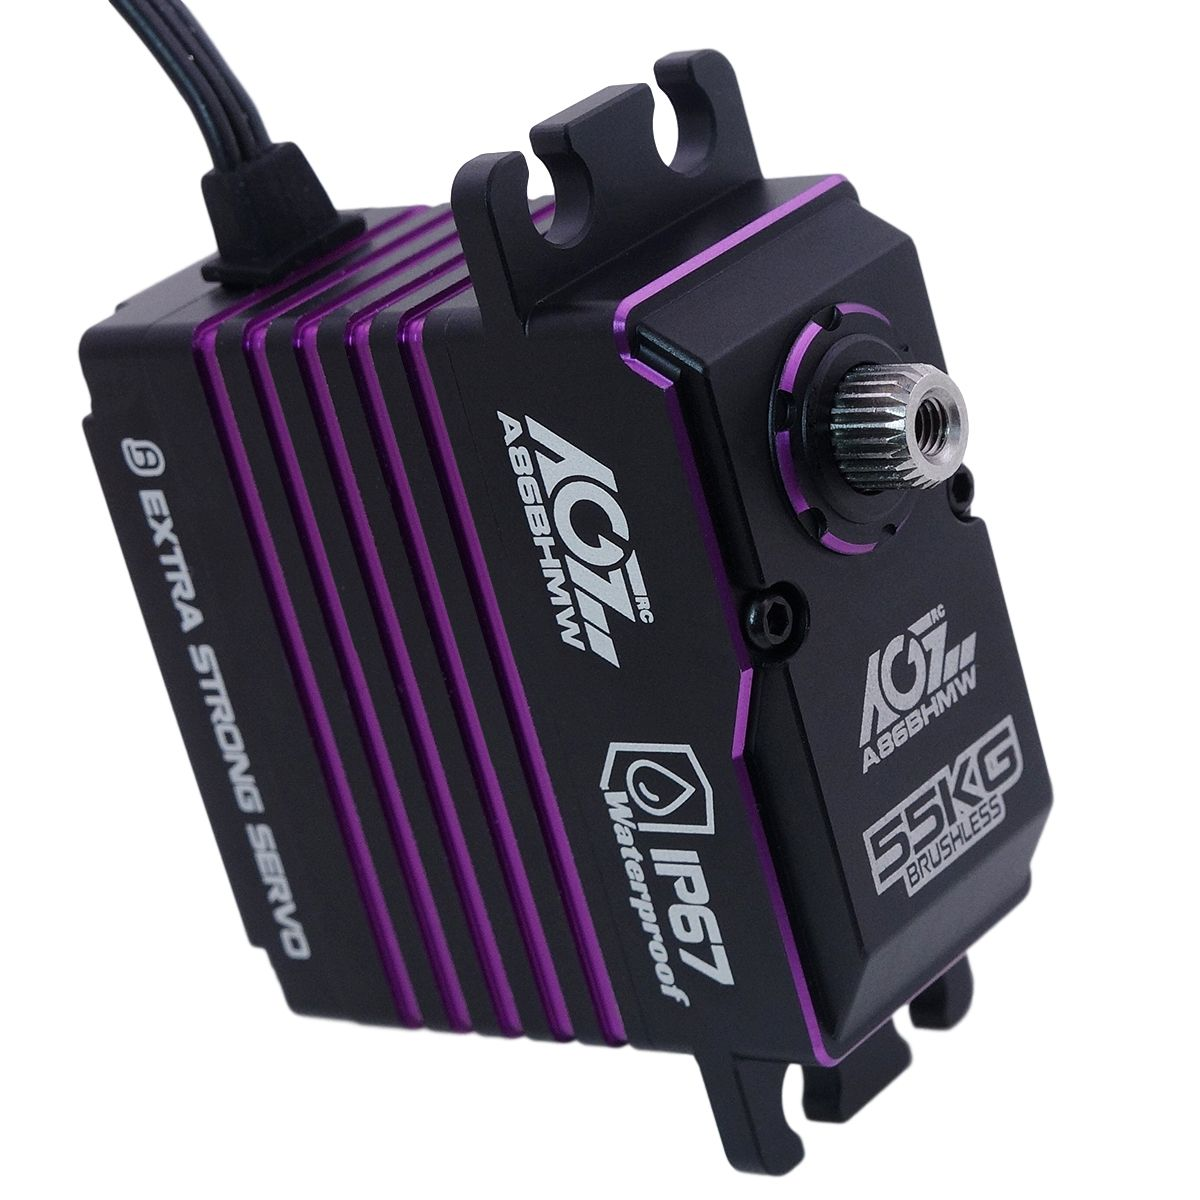 AGFRC A86BHMW Reliable 55KG Metal Gears Fully Waterproof Brushless Purple Extended Standard Servo For 1/8th Scale Buggies